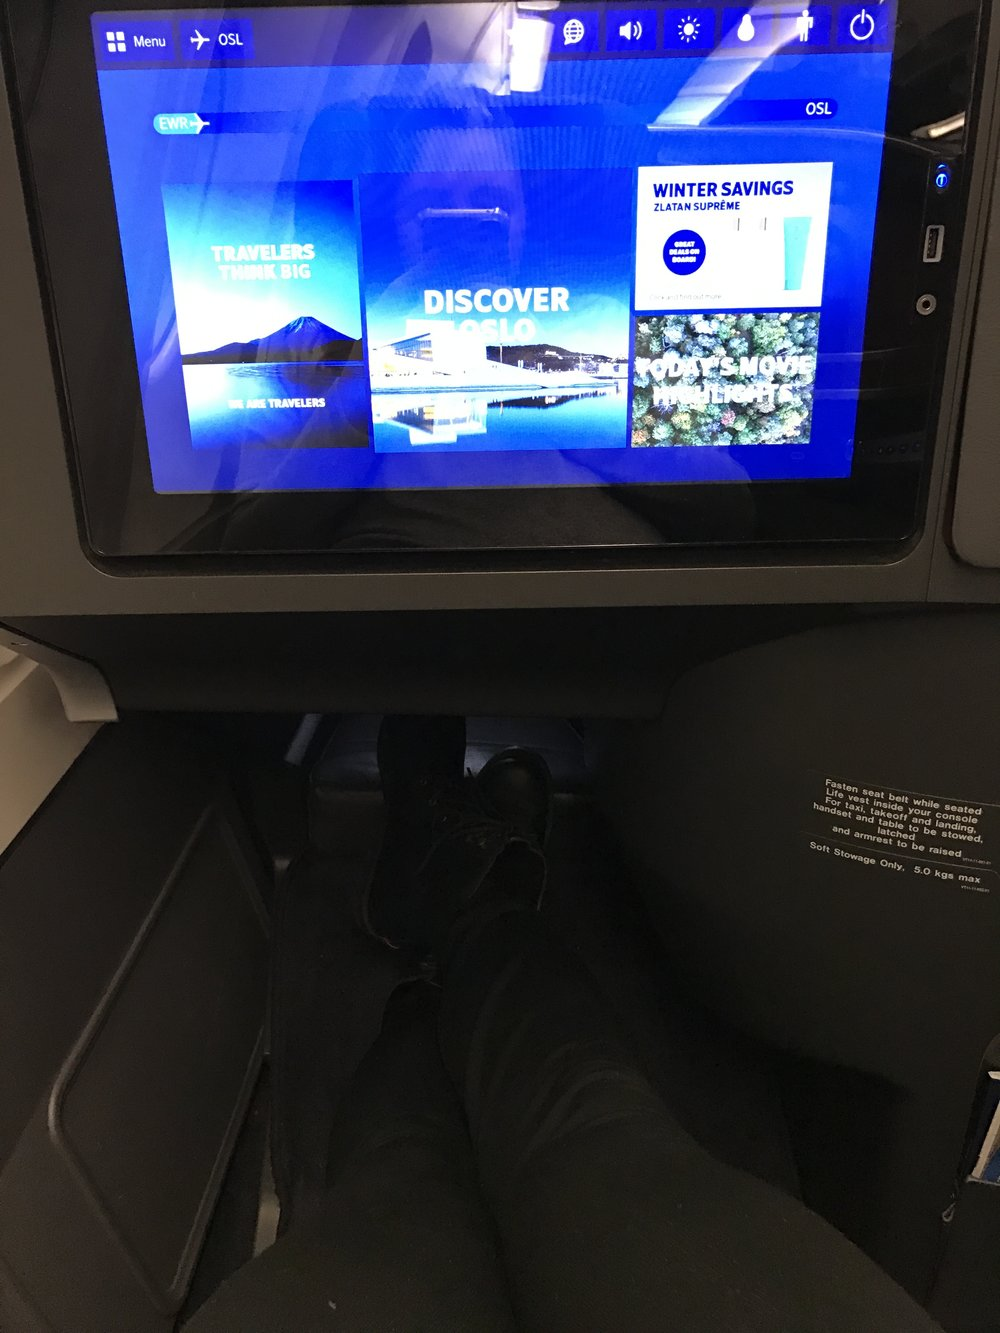 SAS Leg Room and screens in business class